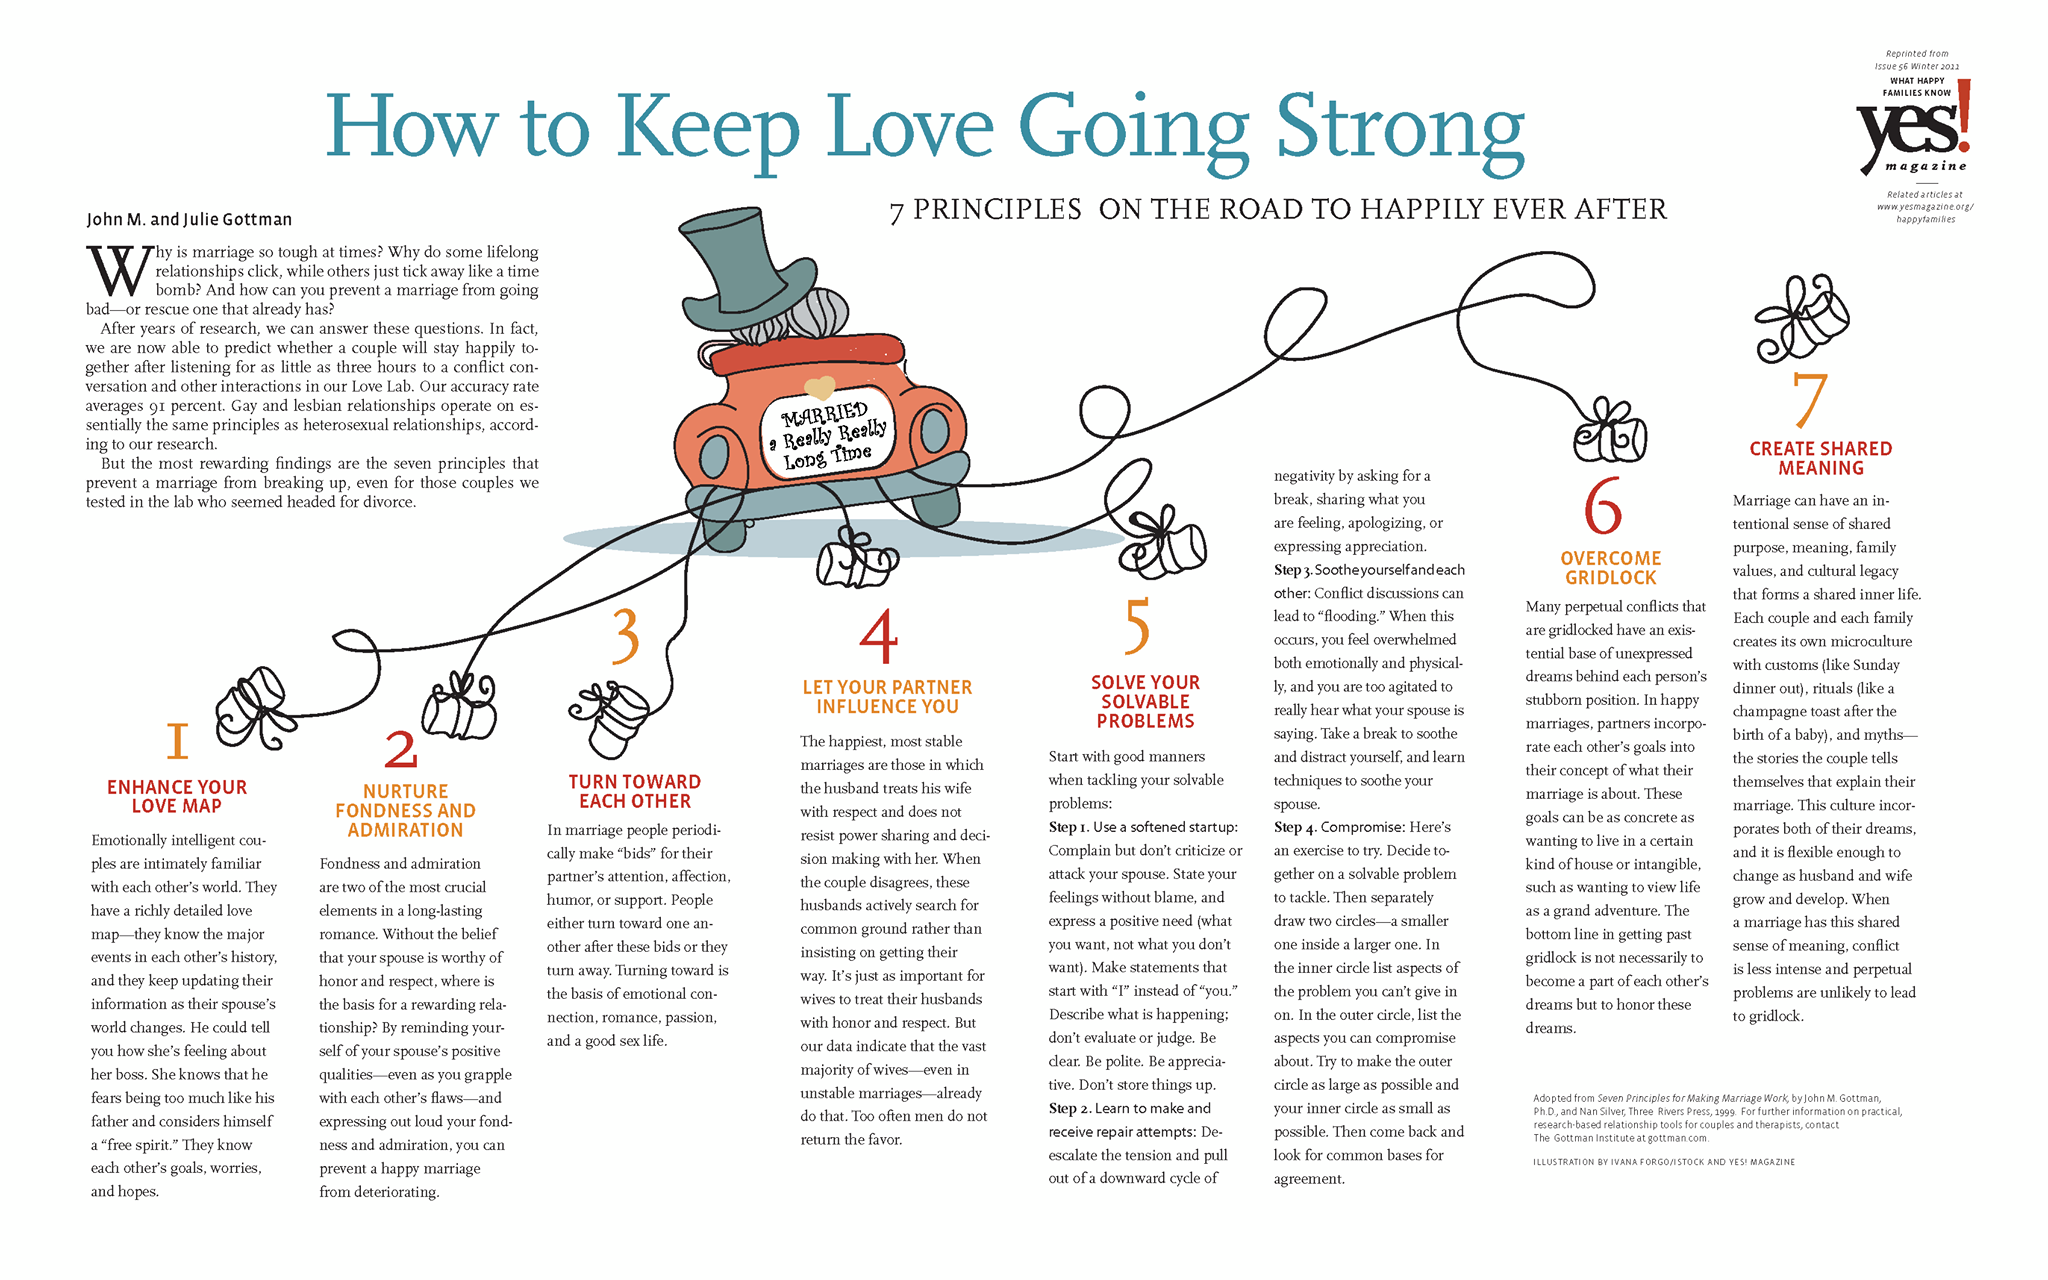 We Have Identified Seven Principles For Happy And Long